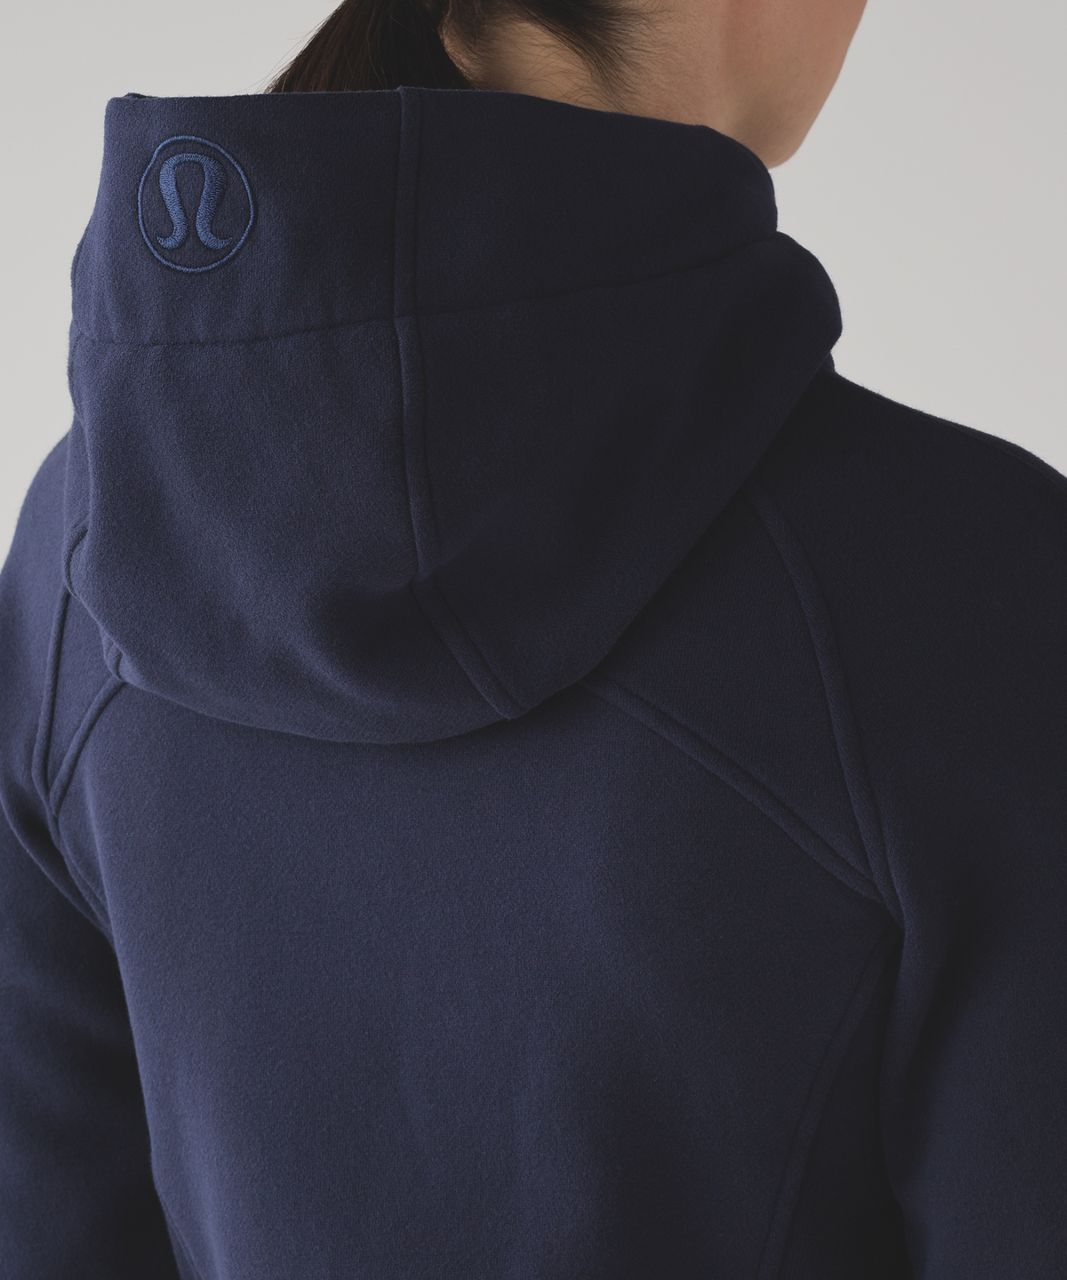 Lululemon Scuba Hoodie *Light Cotton Fleece - Midnight Navy (First Release)